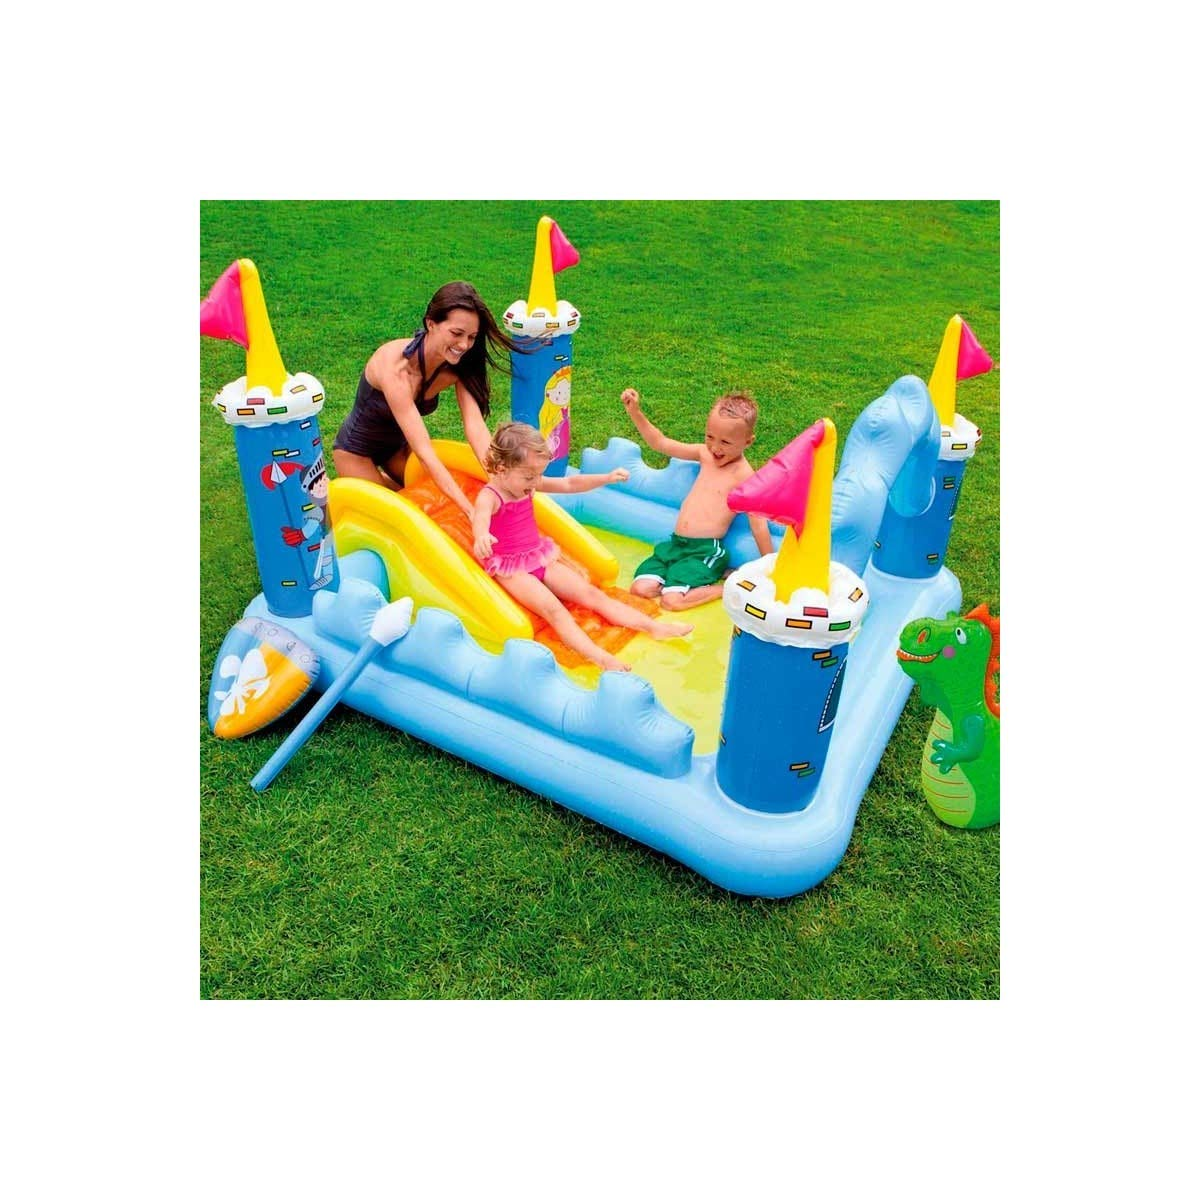 Intex Castillo Hinchable: Amazon.es: Deportes y aire libre